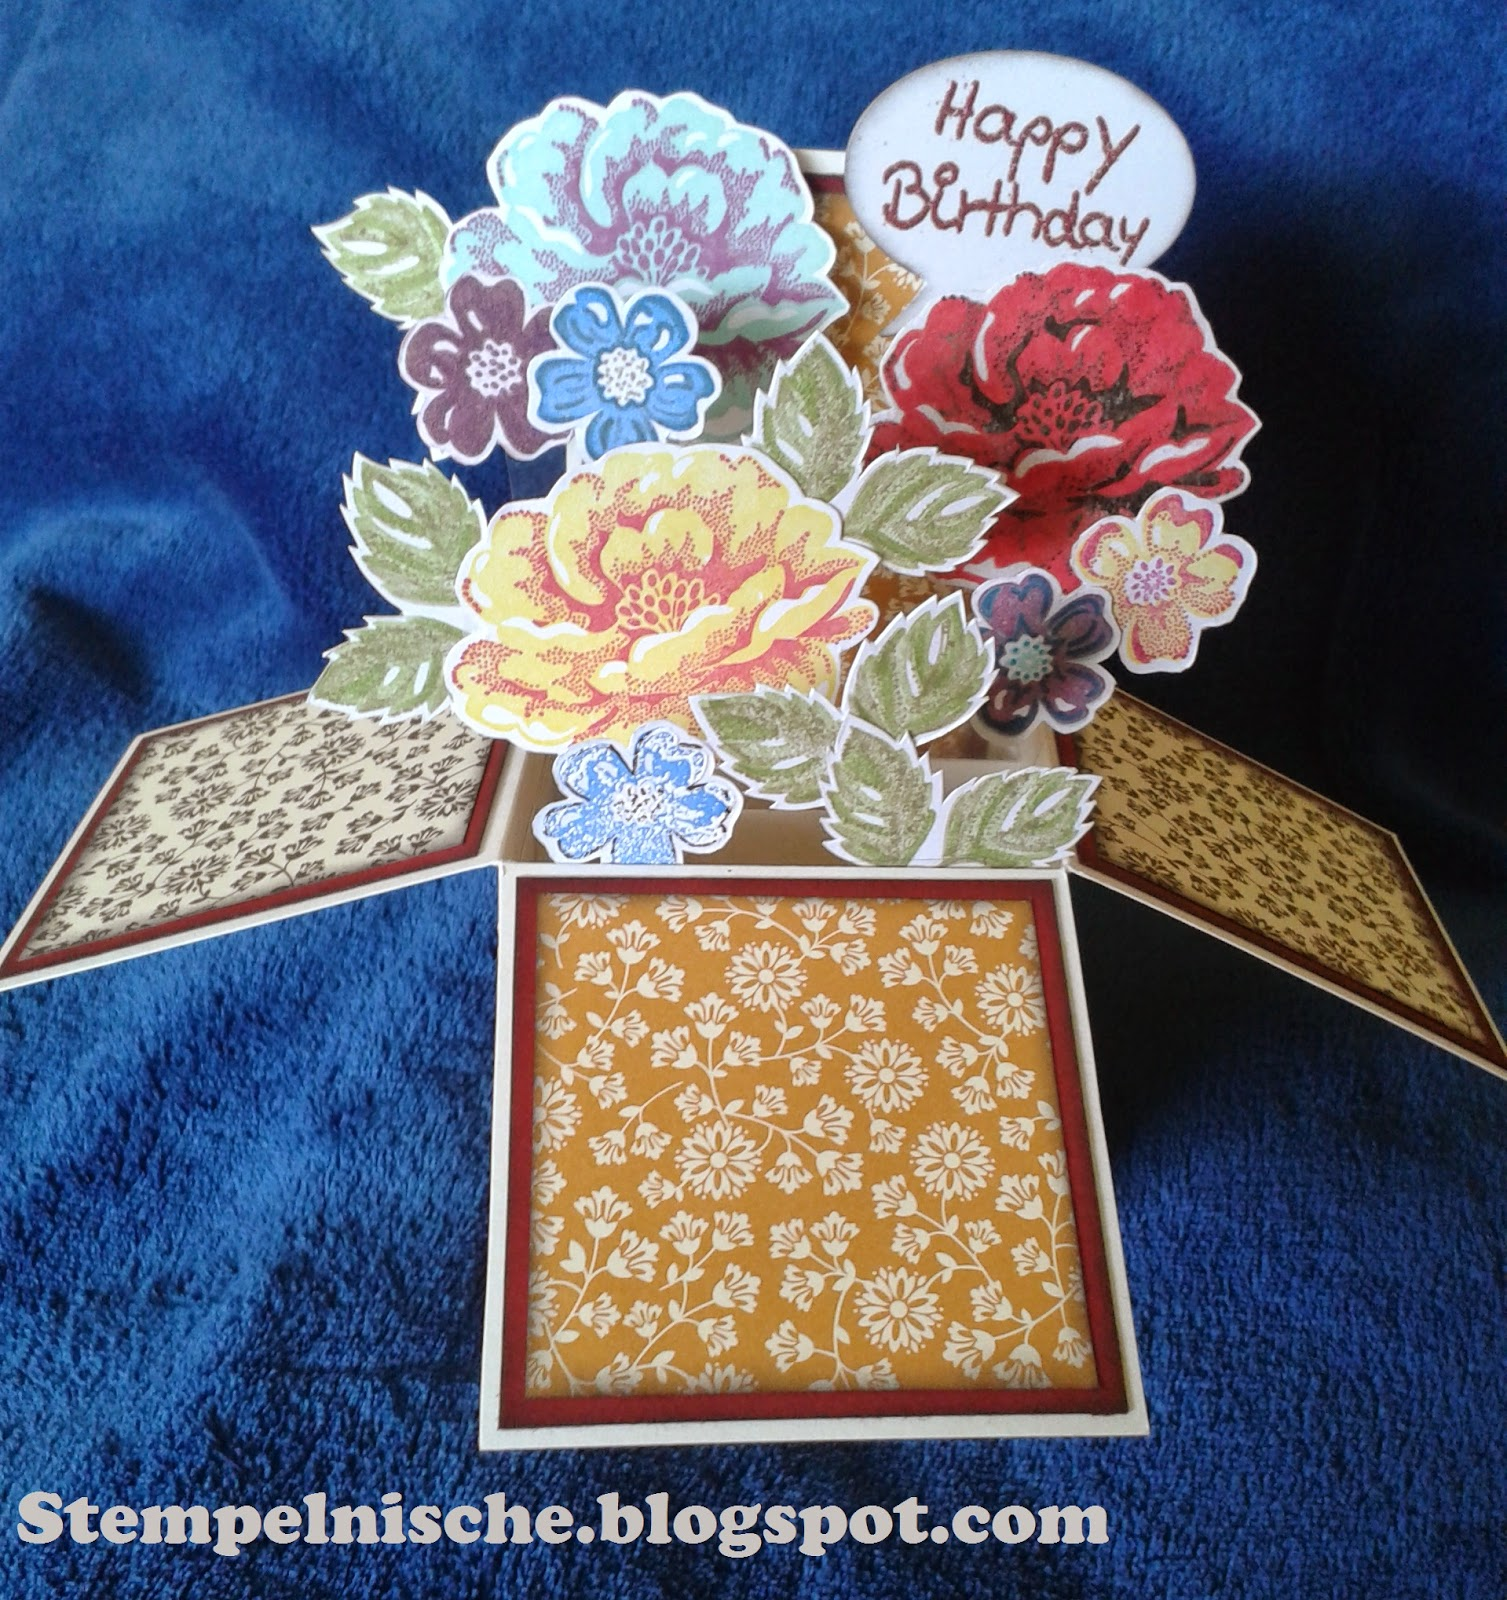 Pop up Blumenbox mit Stampin' up gefertigt